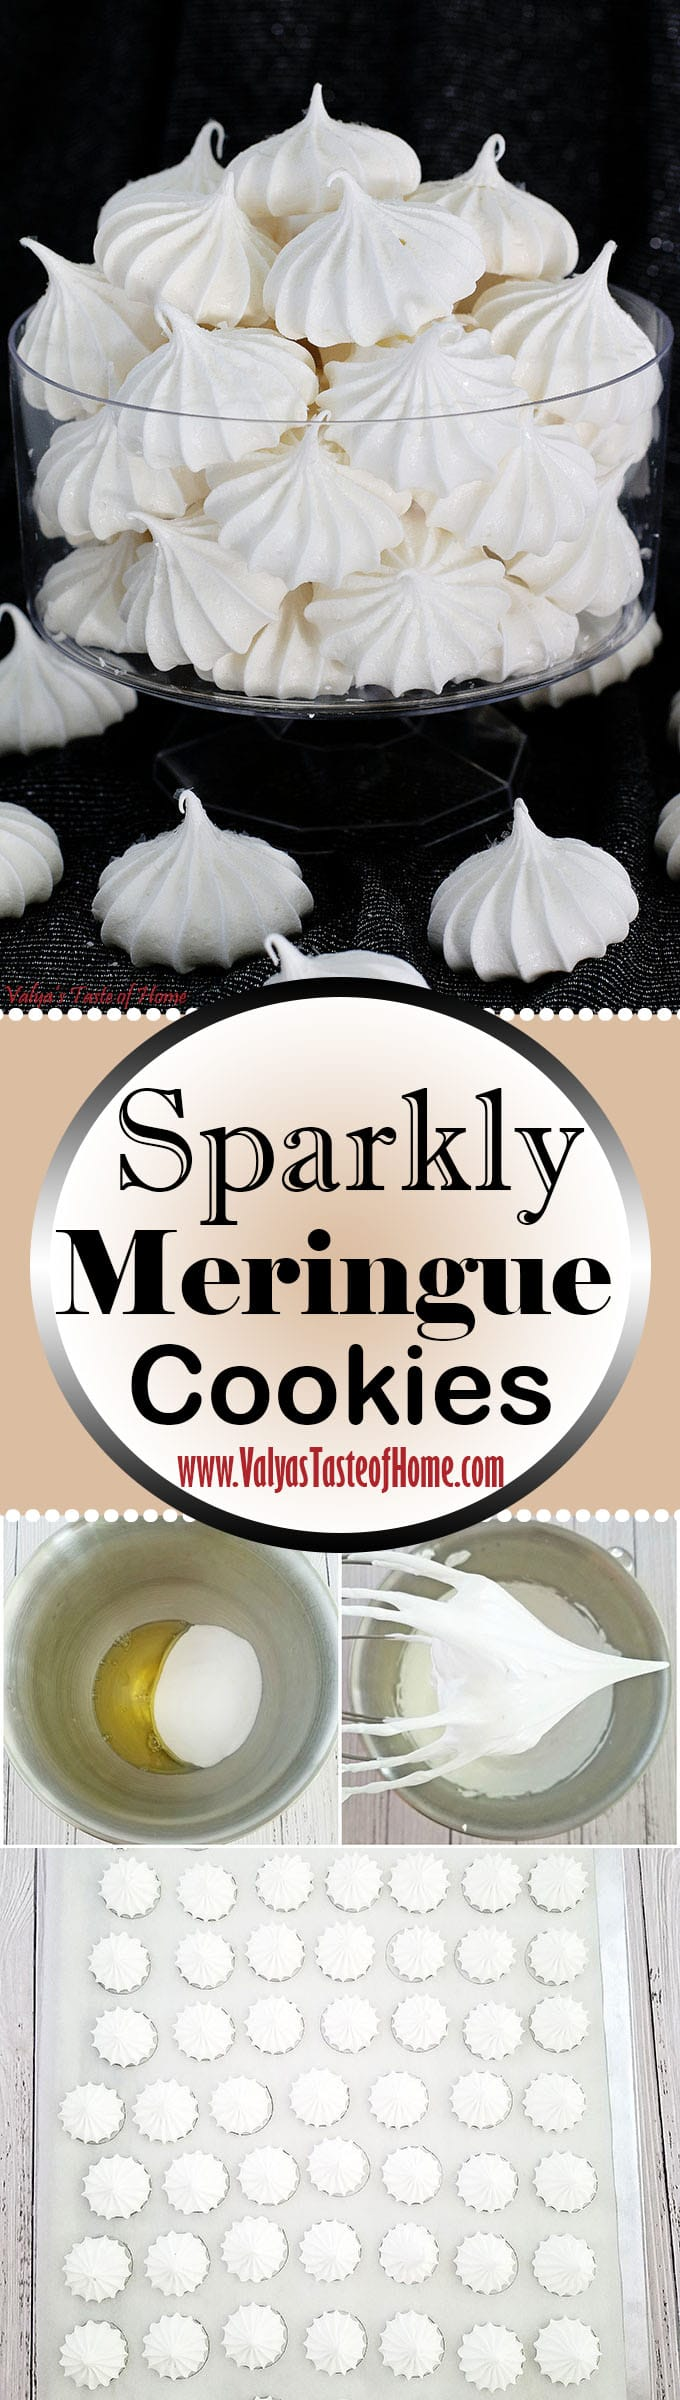 Sparkly Meringue Cookies, beautiful holiday dessert, cookies, delicious cookies, edible glitter, holiday baking, kids aproved, kids love it, meringue, Sparkly Meringue Cookies, super easy to make